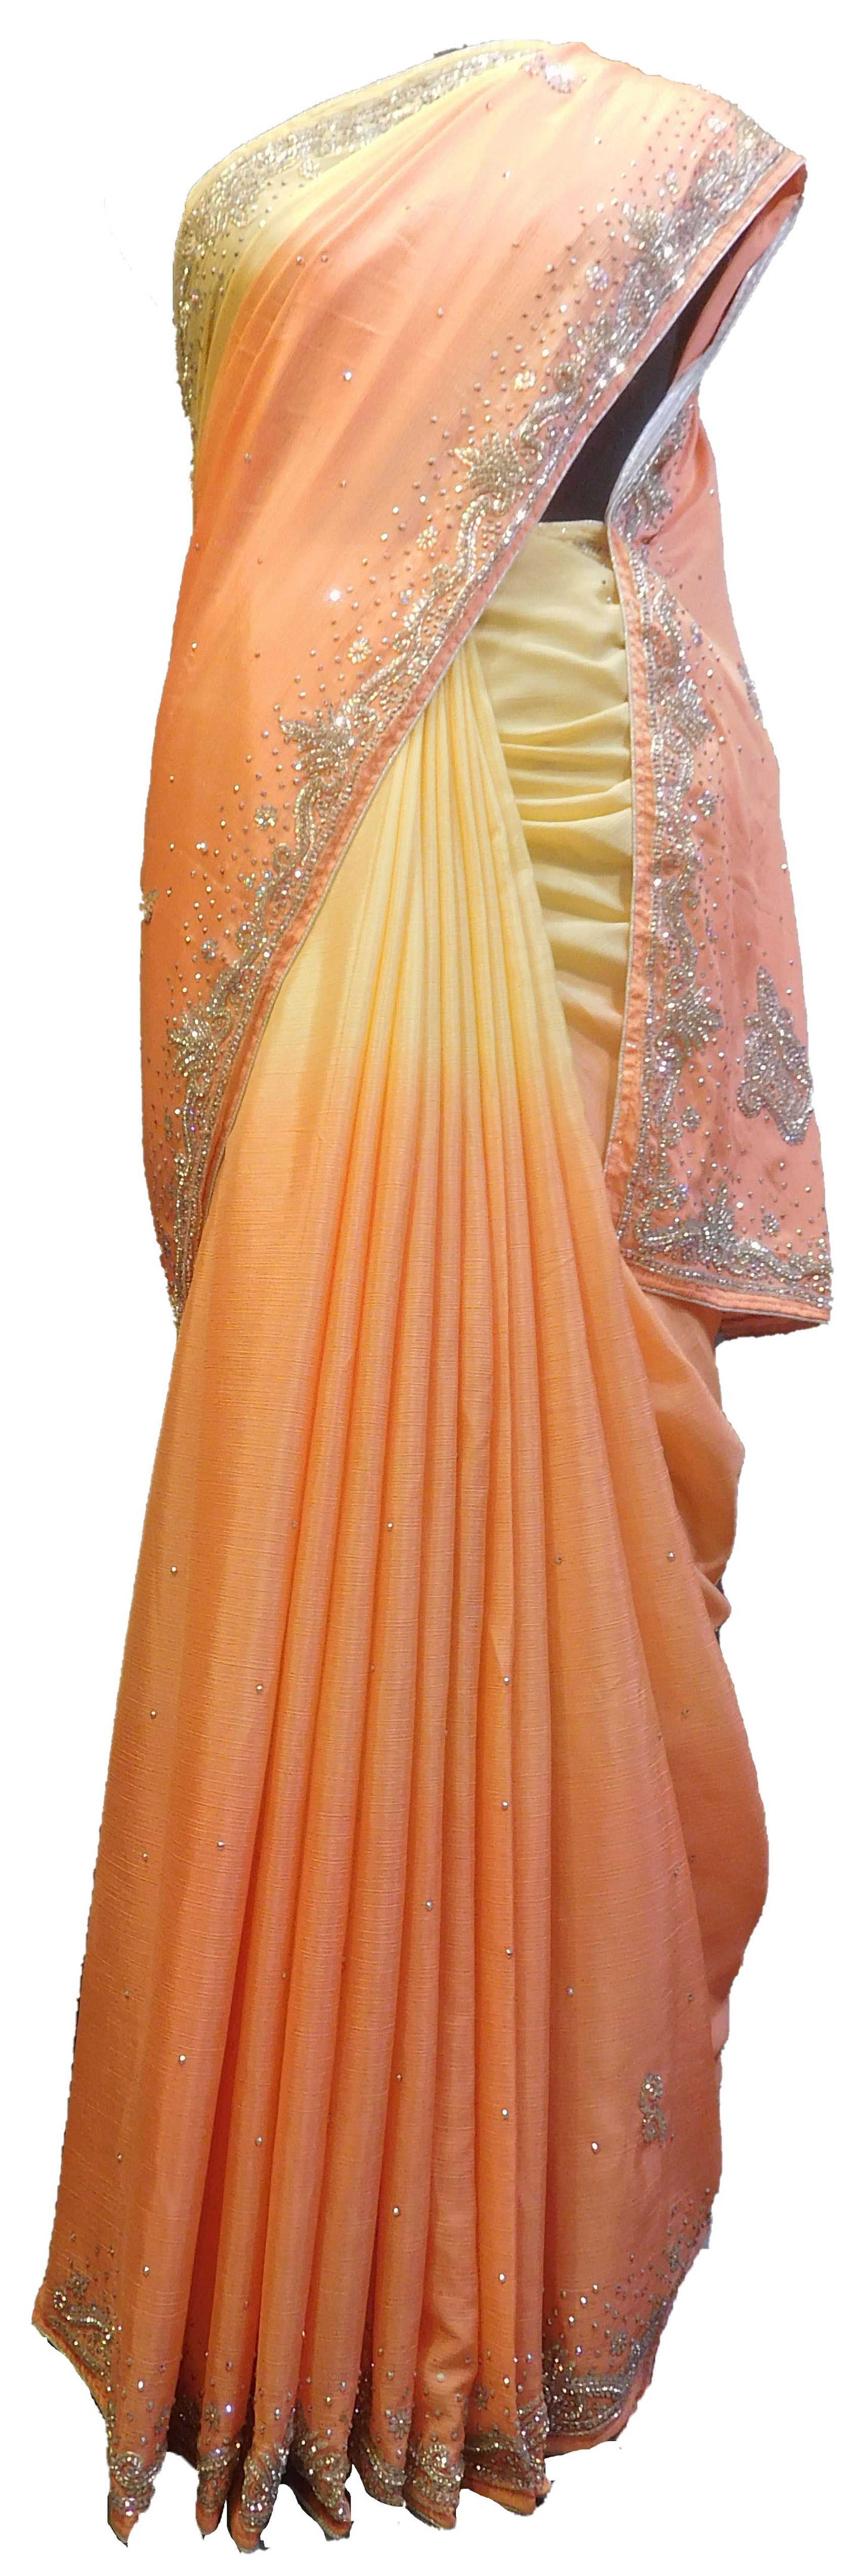 SMSAREE Peach & Yellow Designer Wedding Partywear Crepe (Chinon) Stone & Cutdana Hand Embroidery Work Bridal Saree Sari With Blouse Piece E696